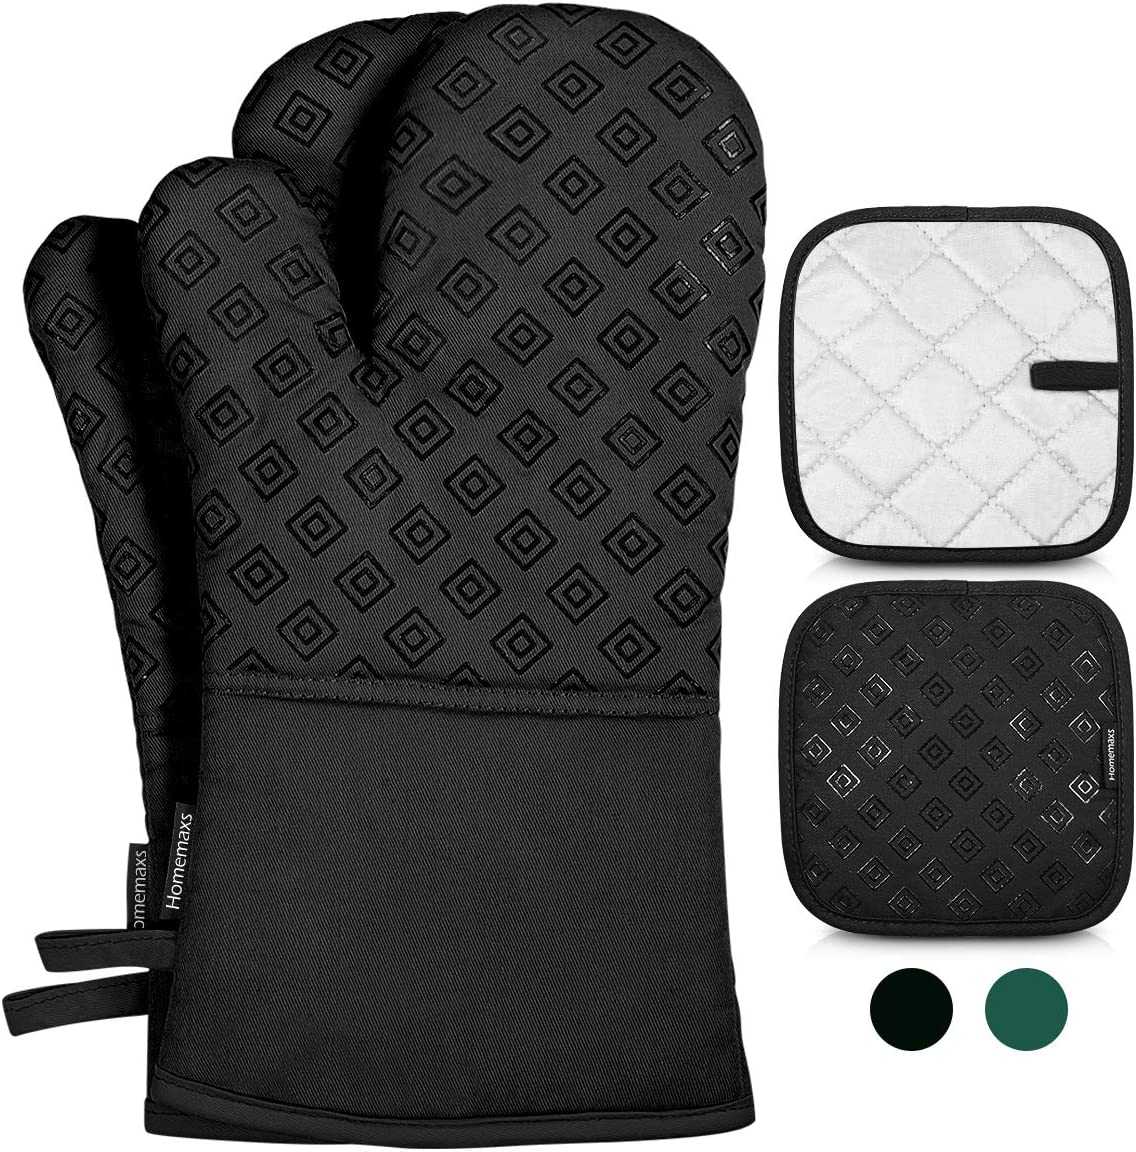 Homemaxs Oven Mitts and Pot Holders 4pcs Set, 500℉ Heat Resistant Non-Slip Food Grade Kitchen Mitten Silicone Cooking Gloves s for Kitchen, Cooking, Baking, BBQ-Black: Home & Kitchen